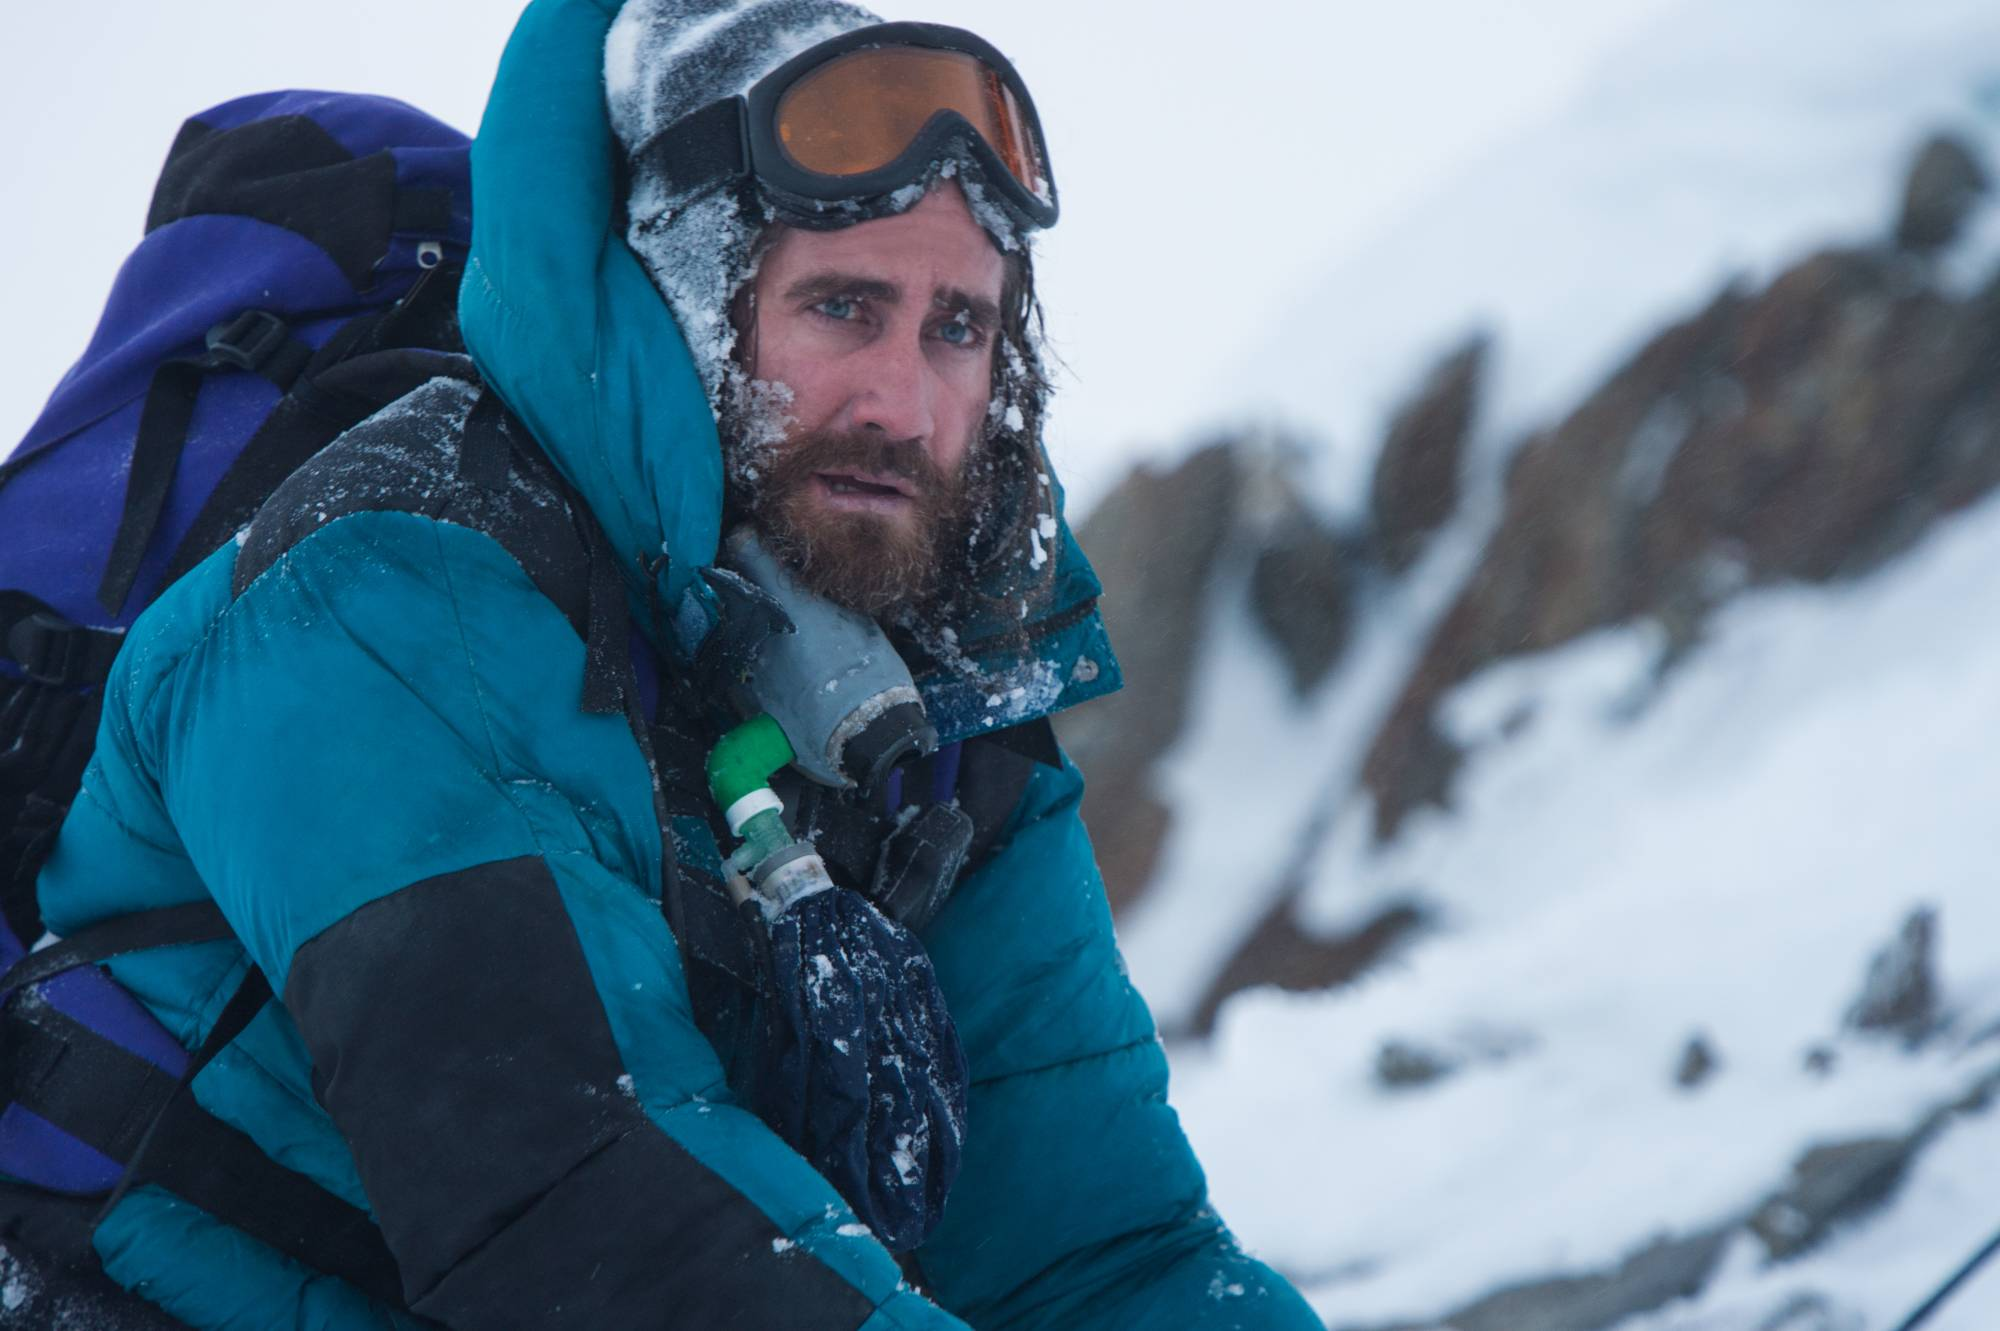 everest-jake-gyllenhaal1.jpg